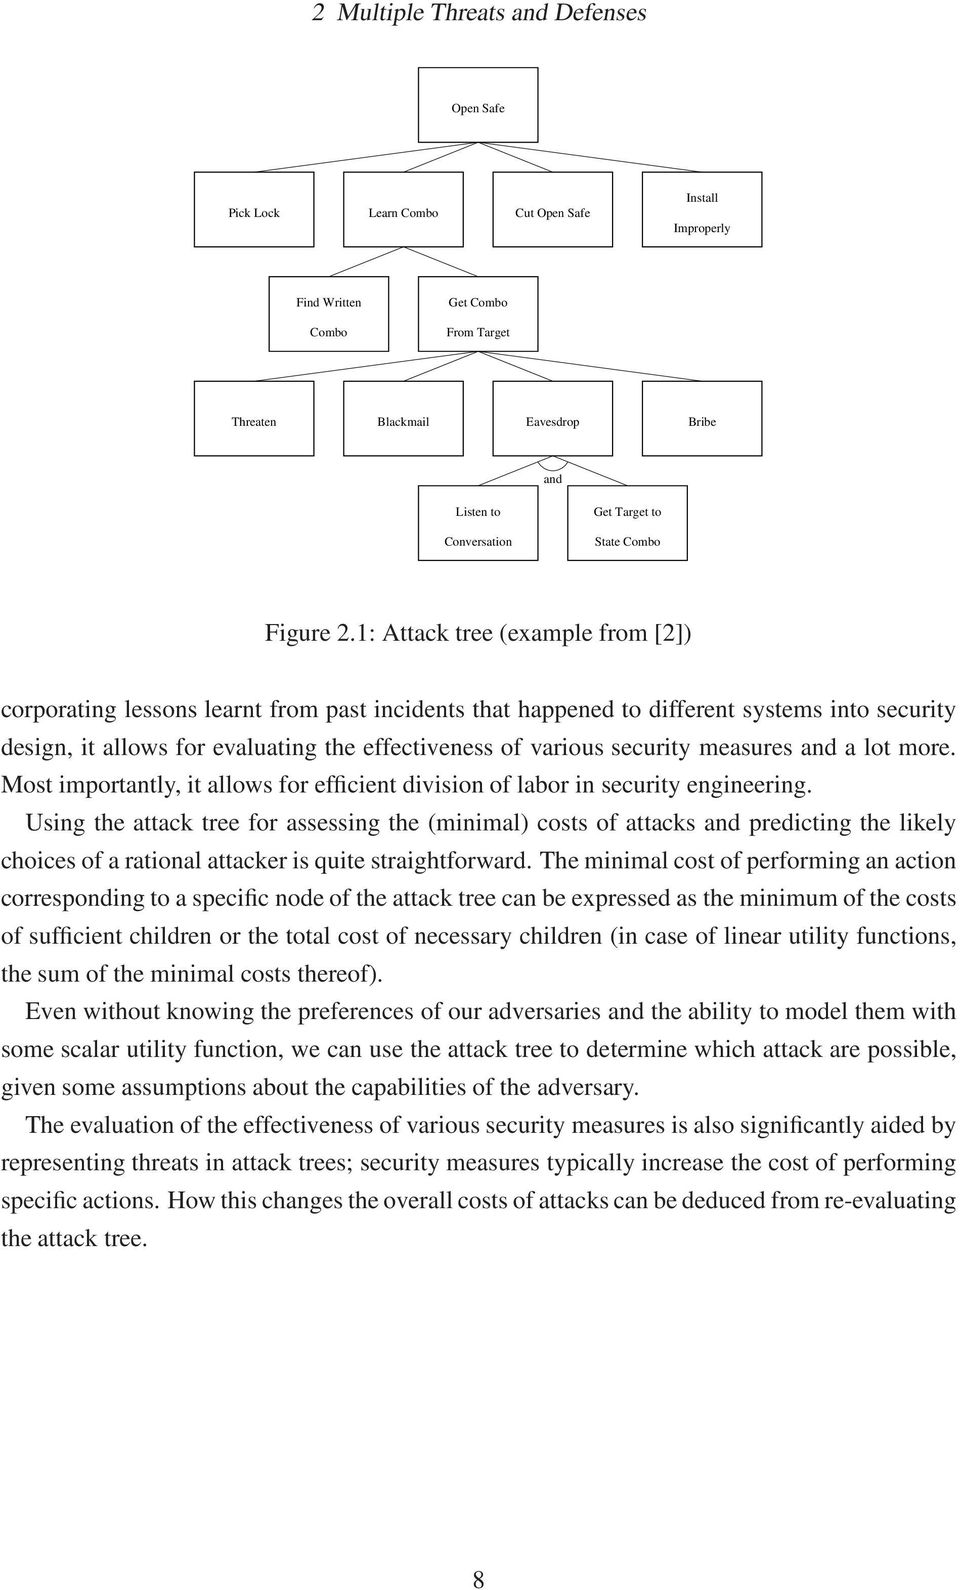 1: Attack tree (example from [2]) corporating lessons learnt from past incidents that happened to different systems into security design, it allows for evaluating the effectiveness of various